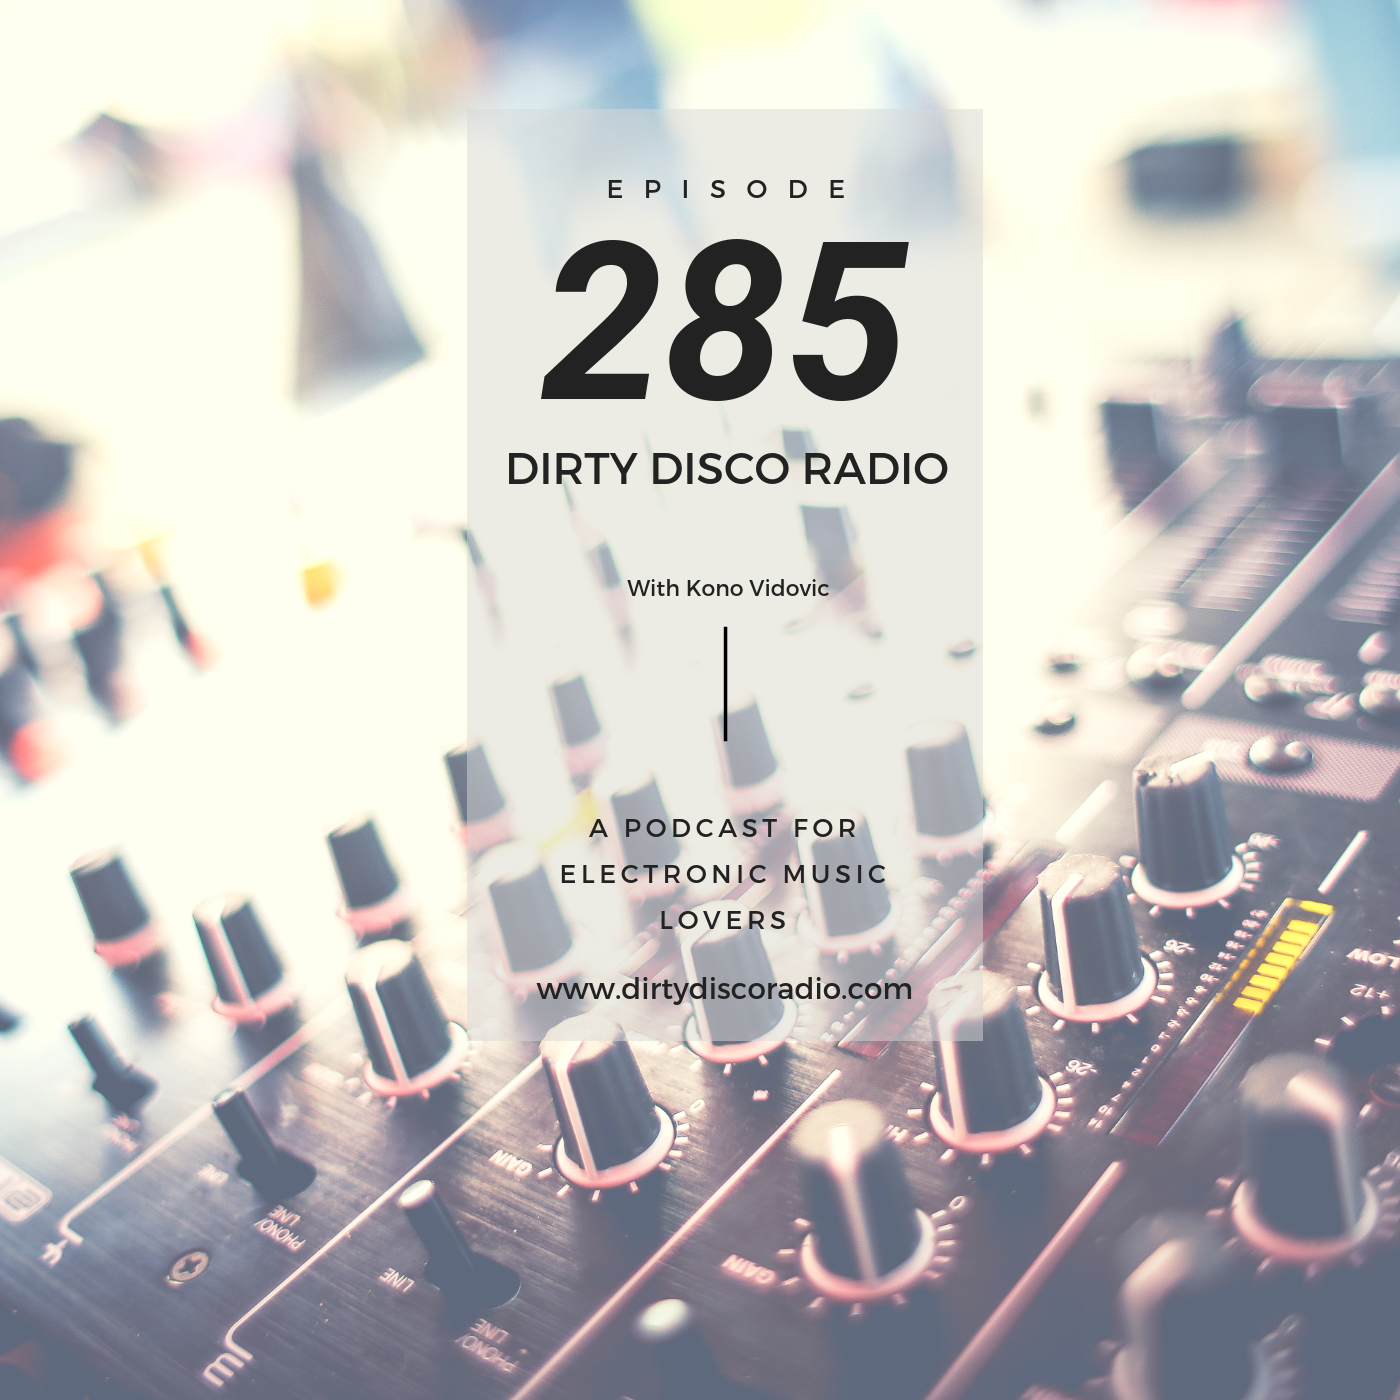 Weekly selection in electronic music - Dirty Disco 285